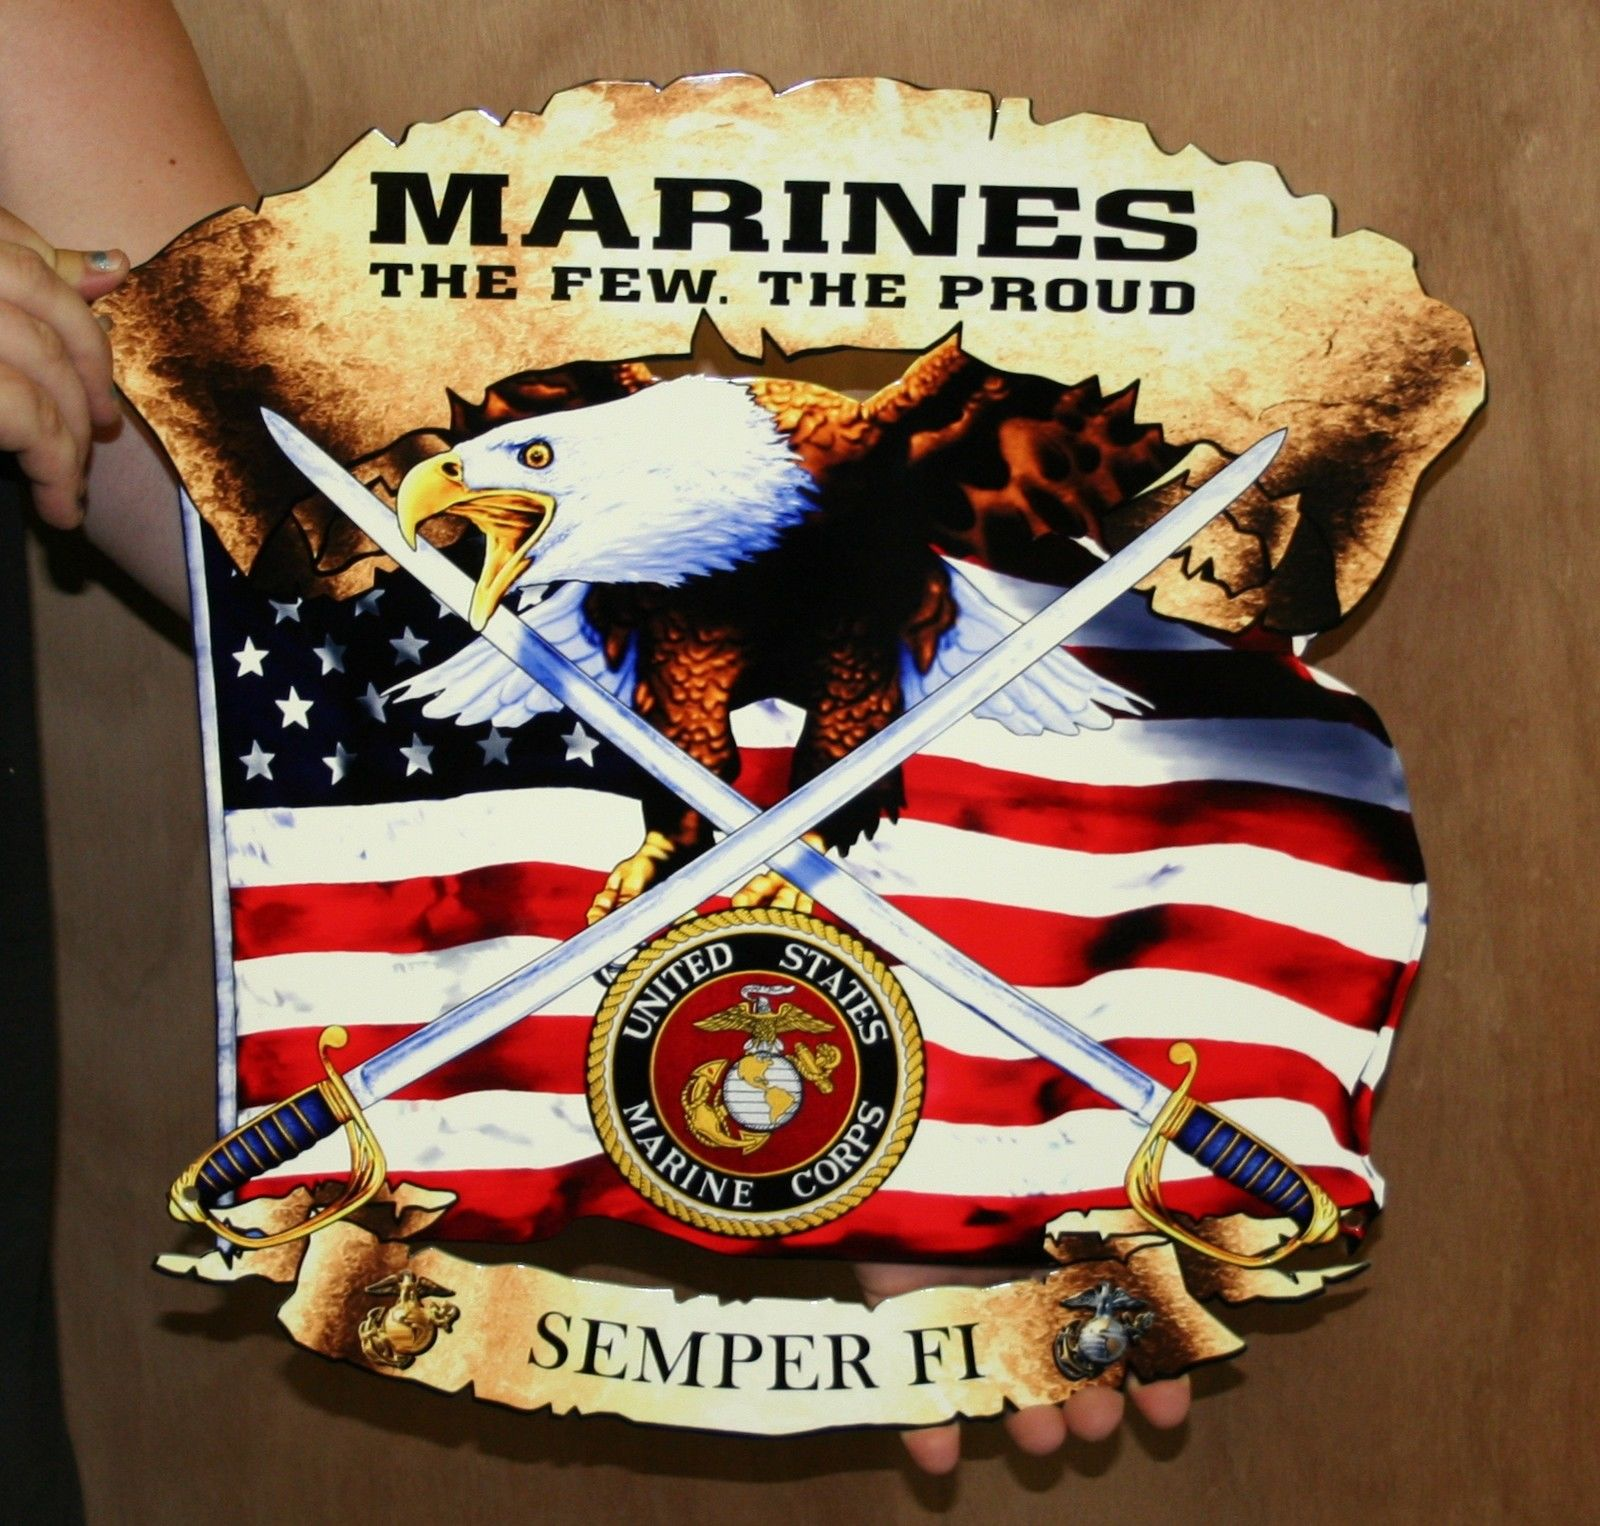 USMC FLAG MANCAVE METAL SIGN WITH LOGOS SEMPER FI | Custom ...